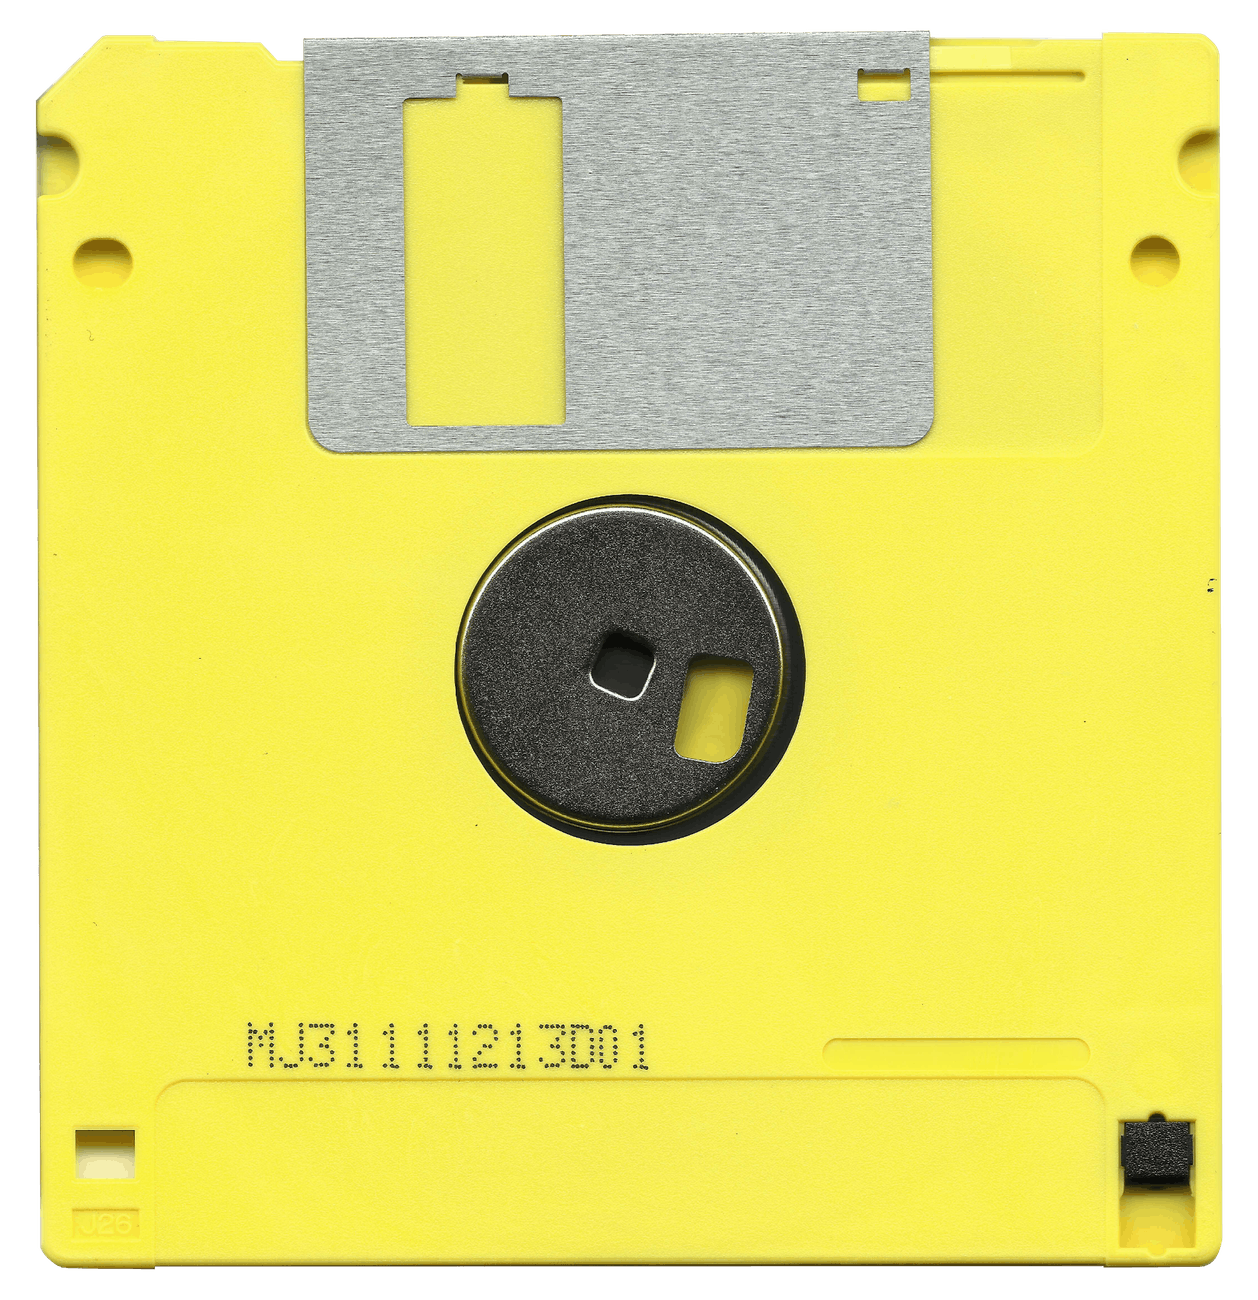 floppy-disk-computer-163161.png